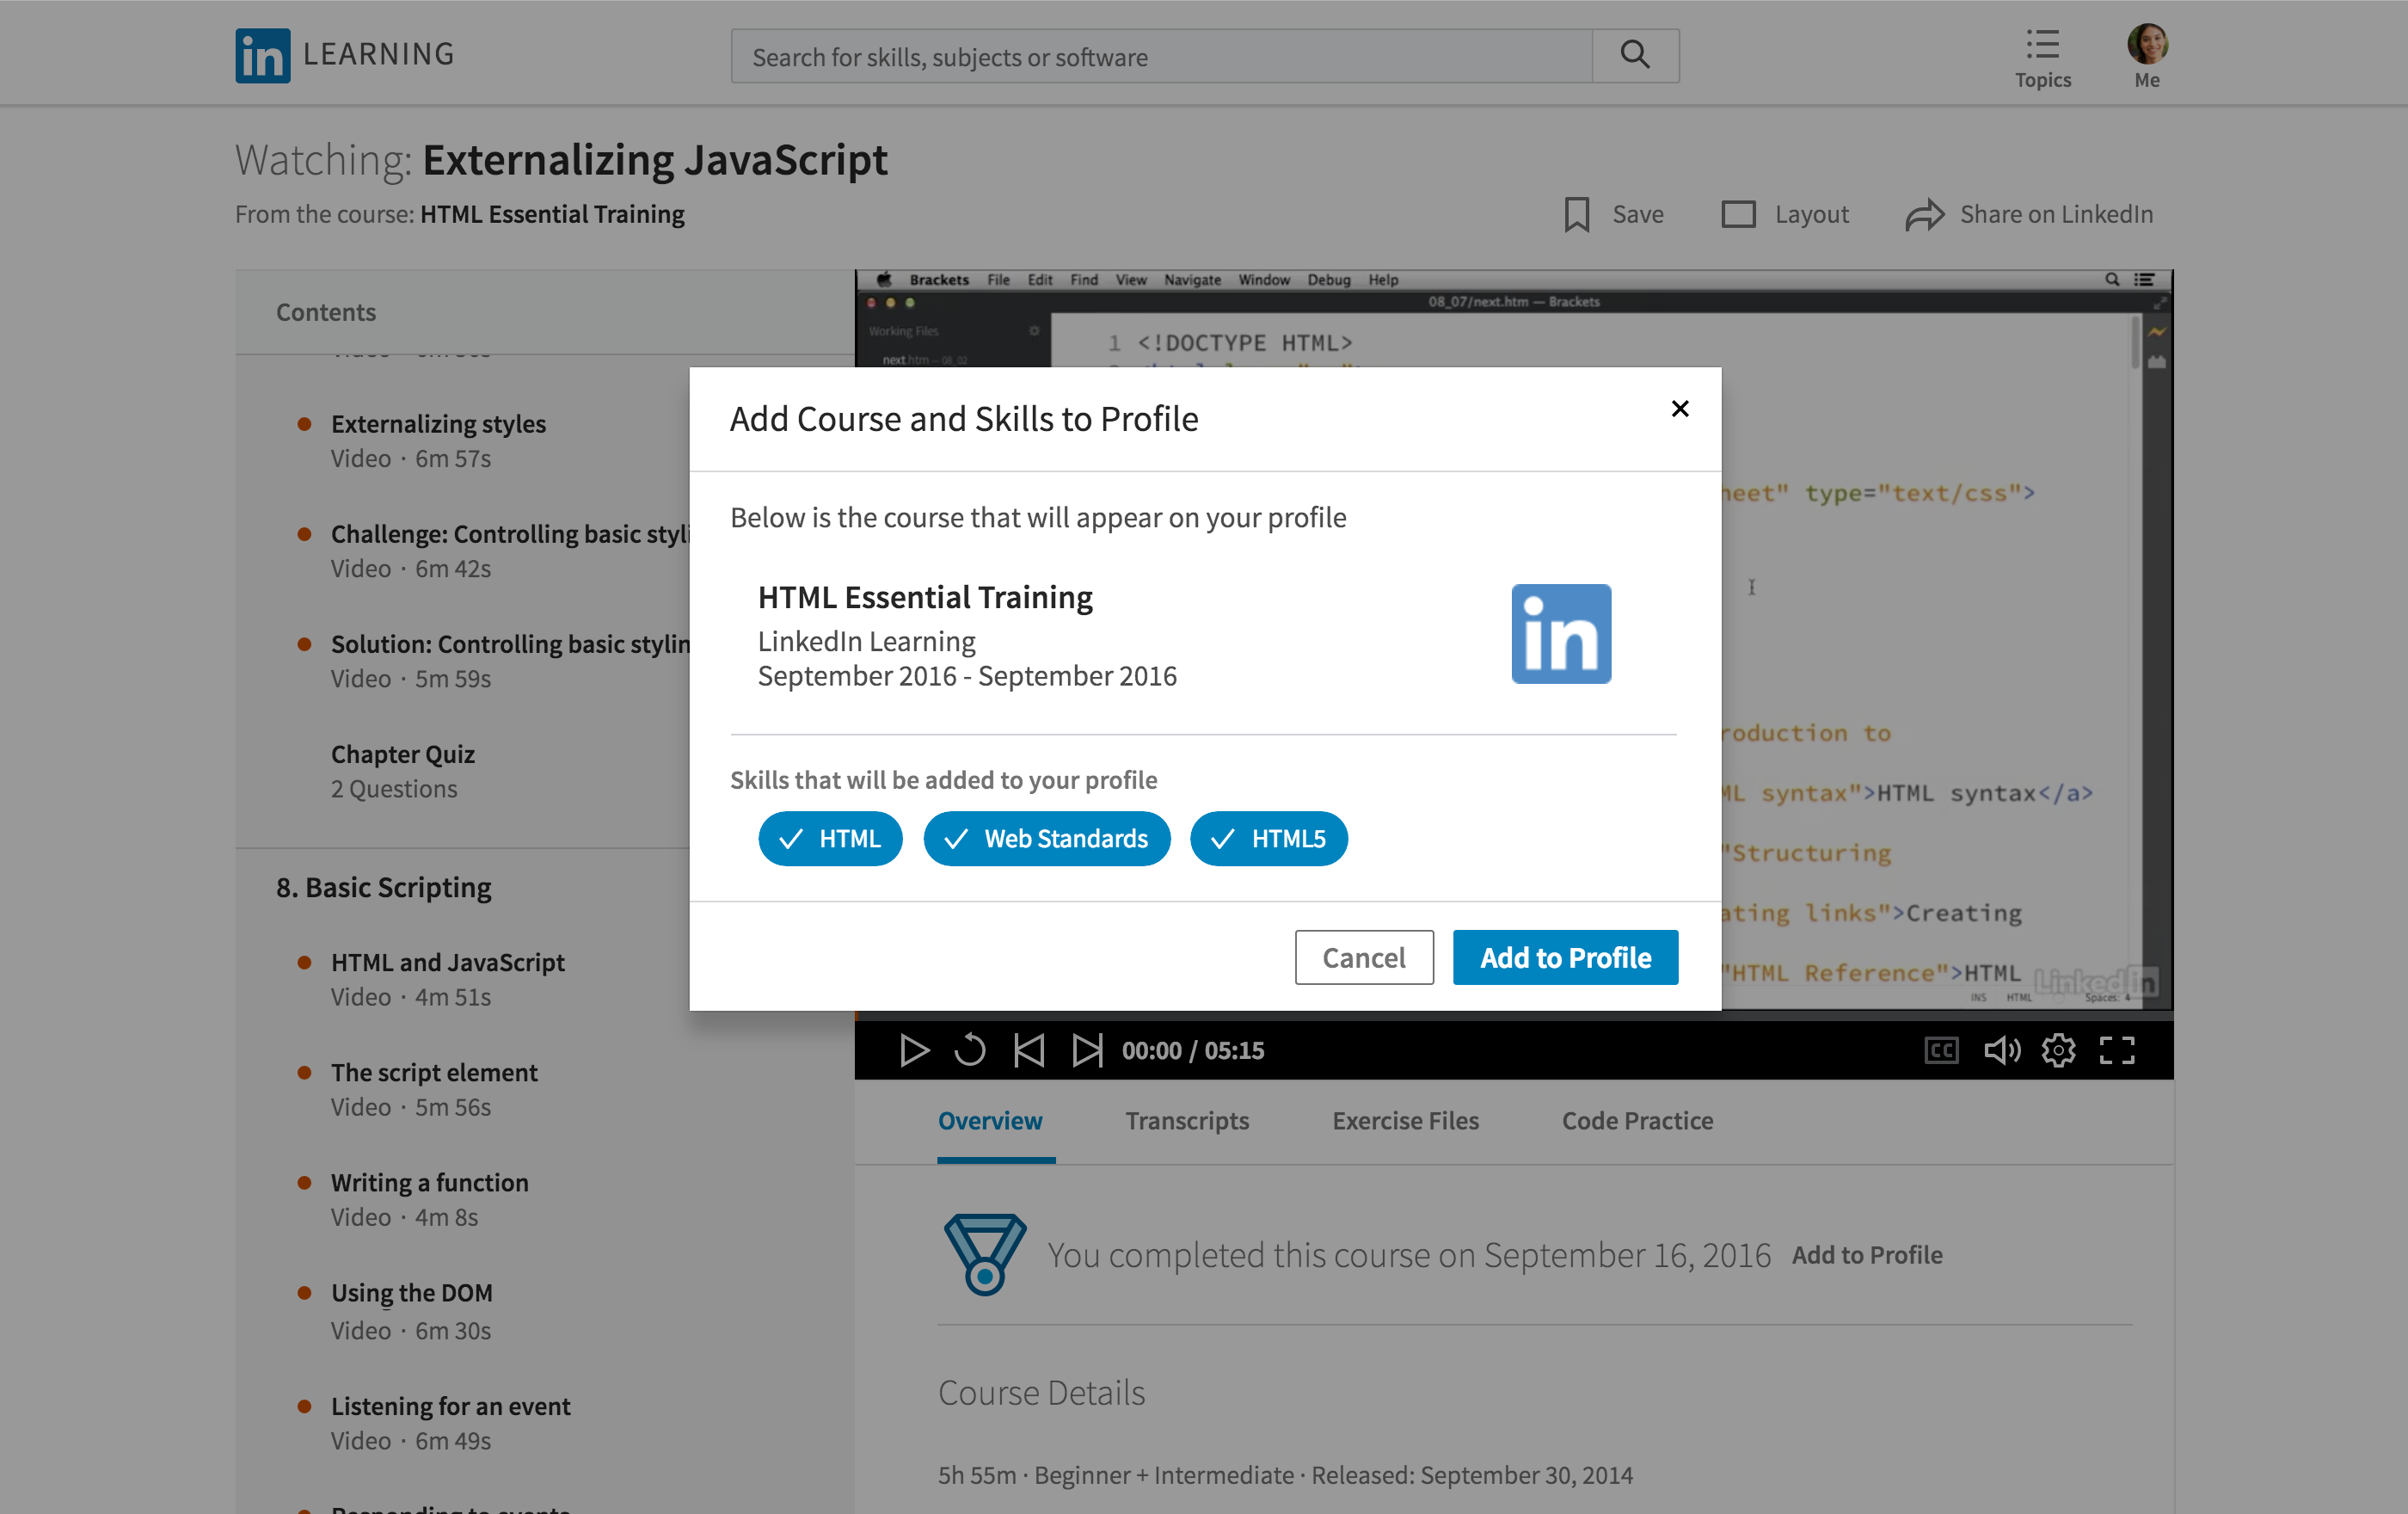 LinkedIn Learning is Here!